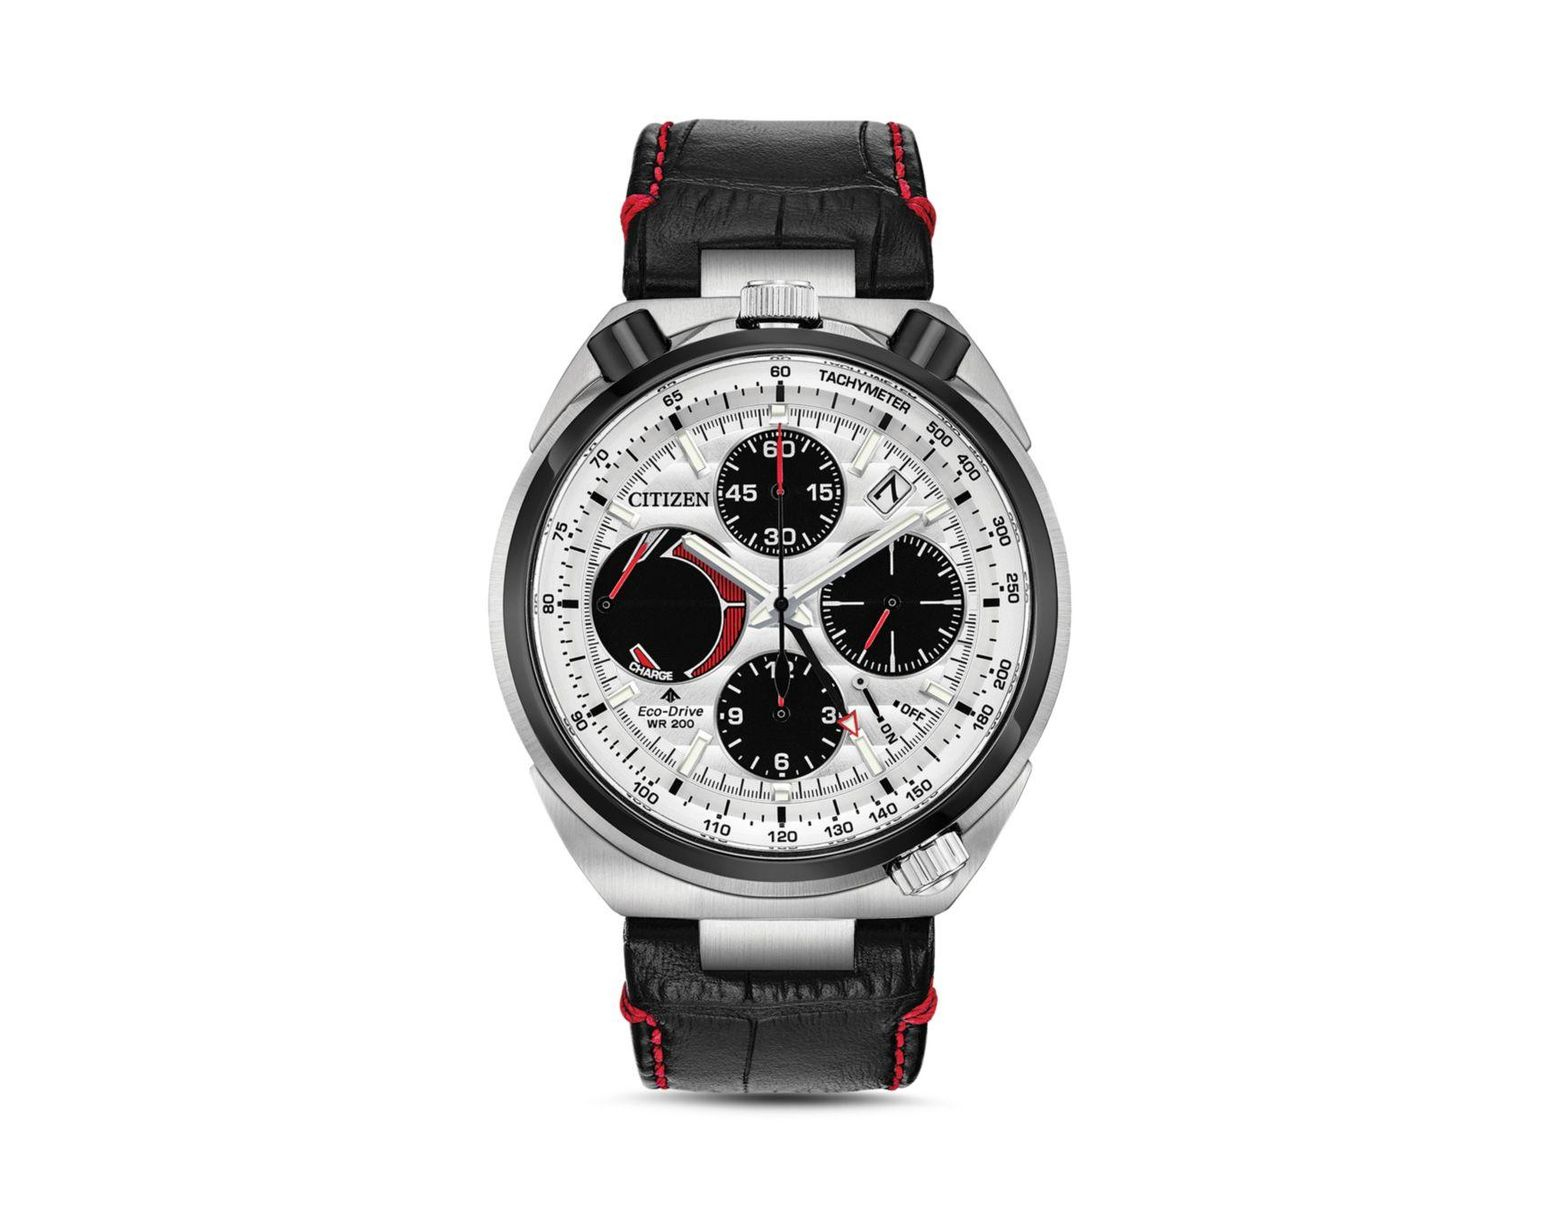 e79a548c6 Citizen Chronograph Promaster Tsuno Racer Black Leather Strap Watch 45mm in  Black for Men - Save 16% - Lyst